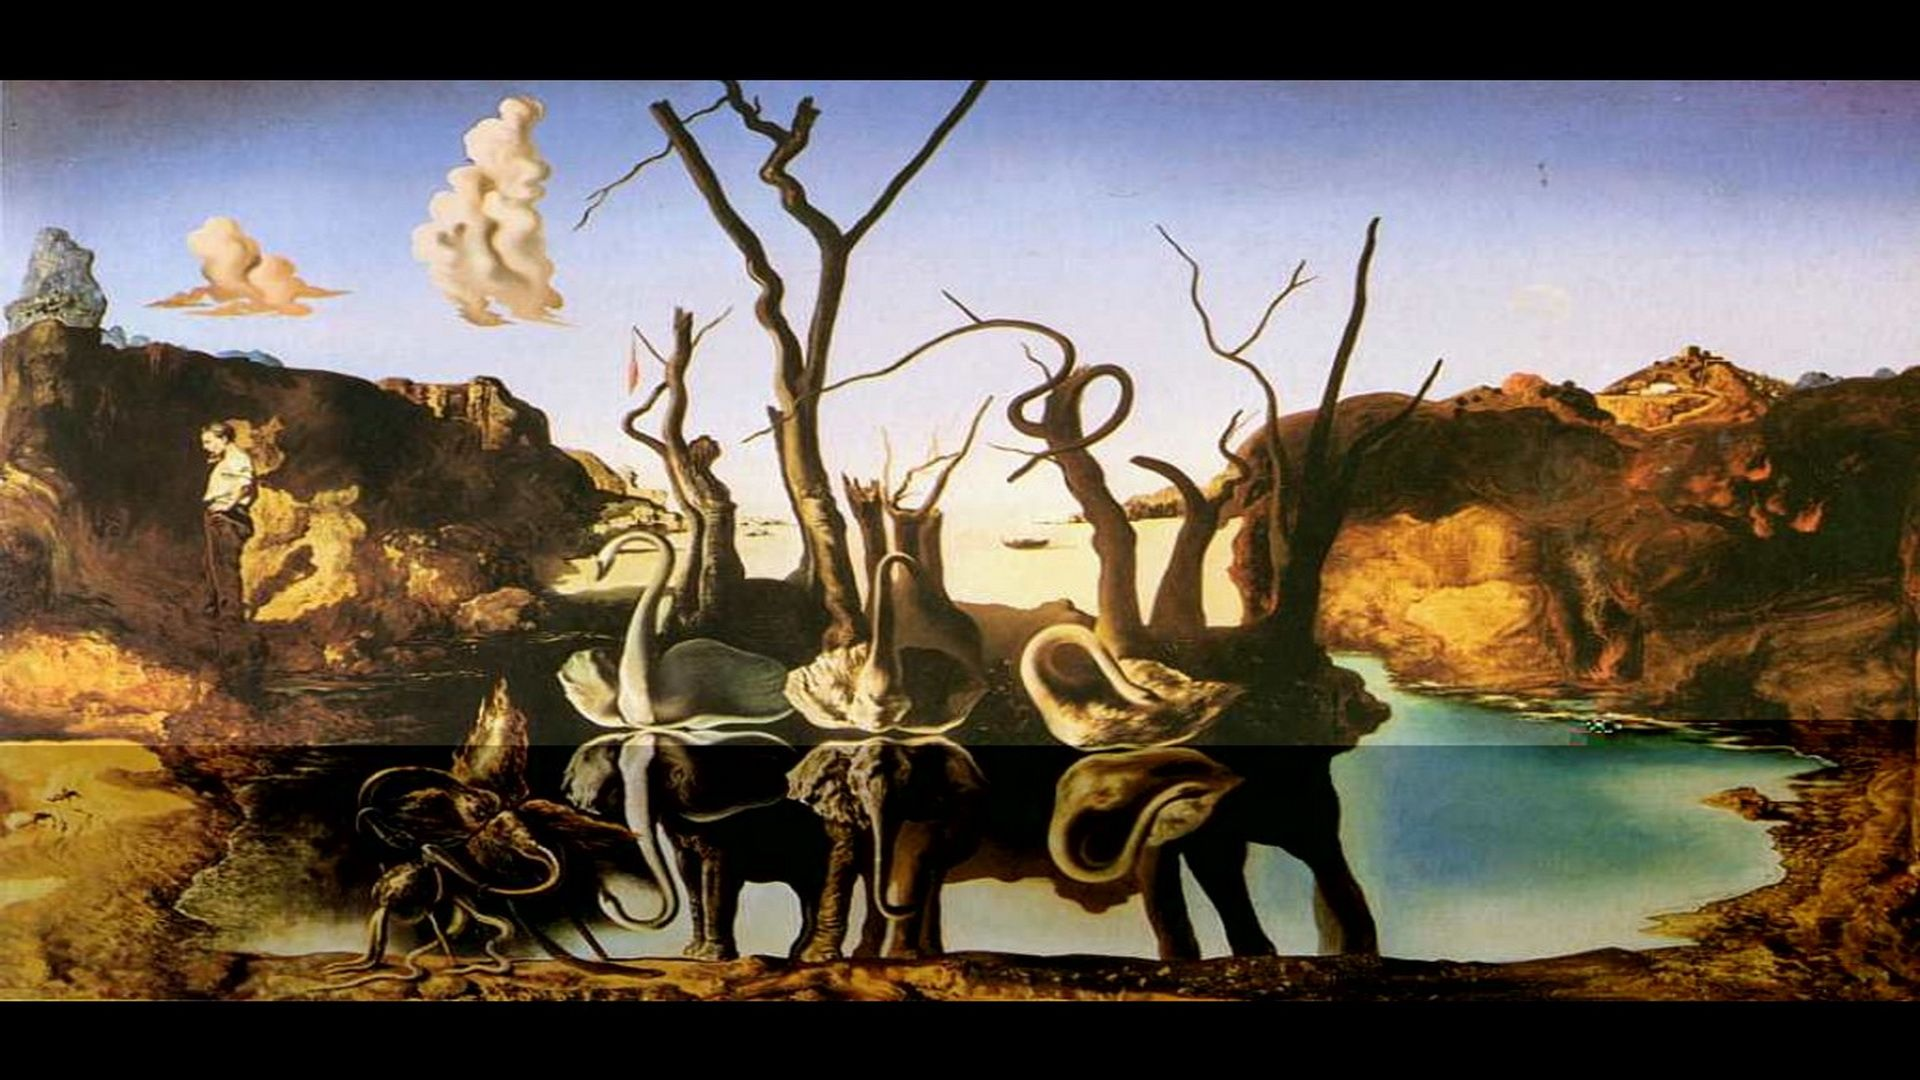 Artwork Salvador Dali Dal Wallpaper Swans Reflecting Elephants .dali